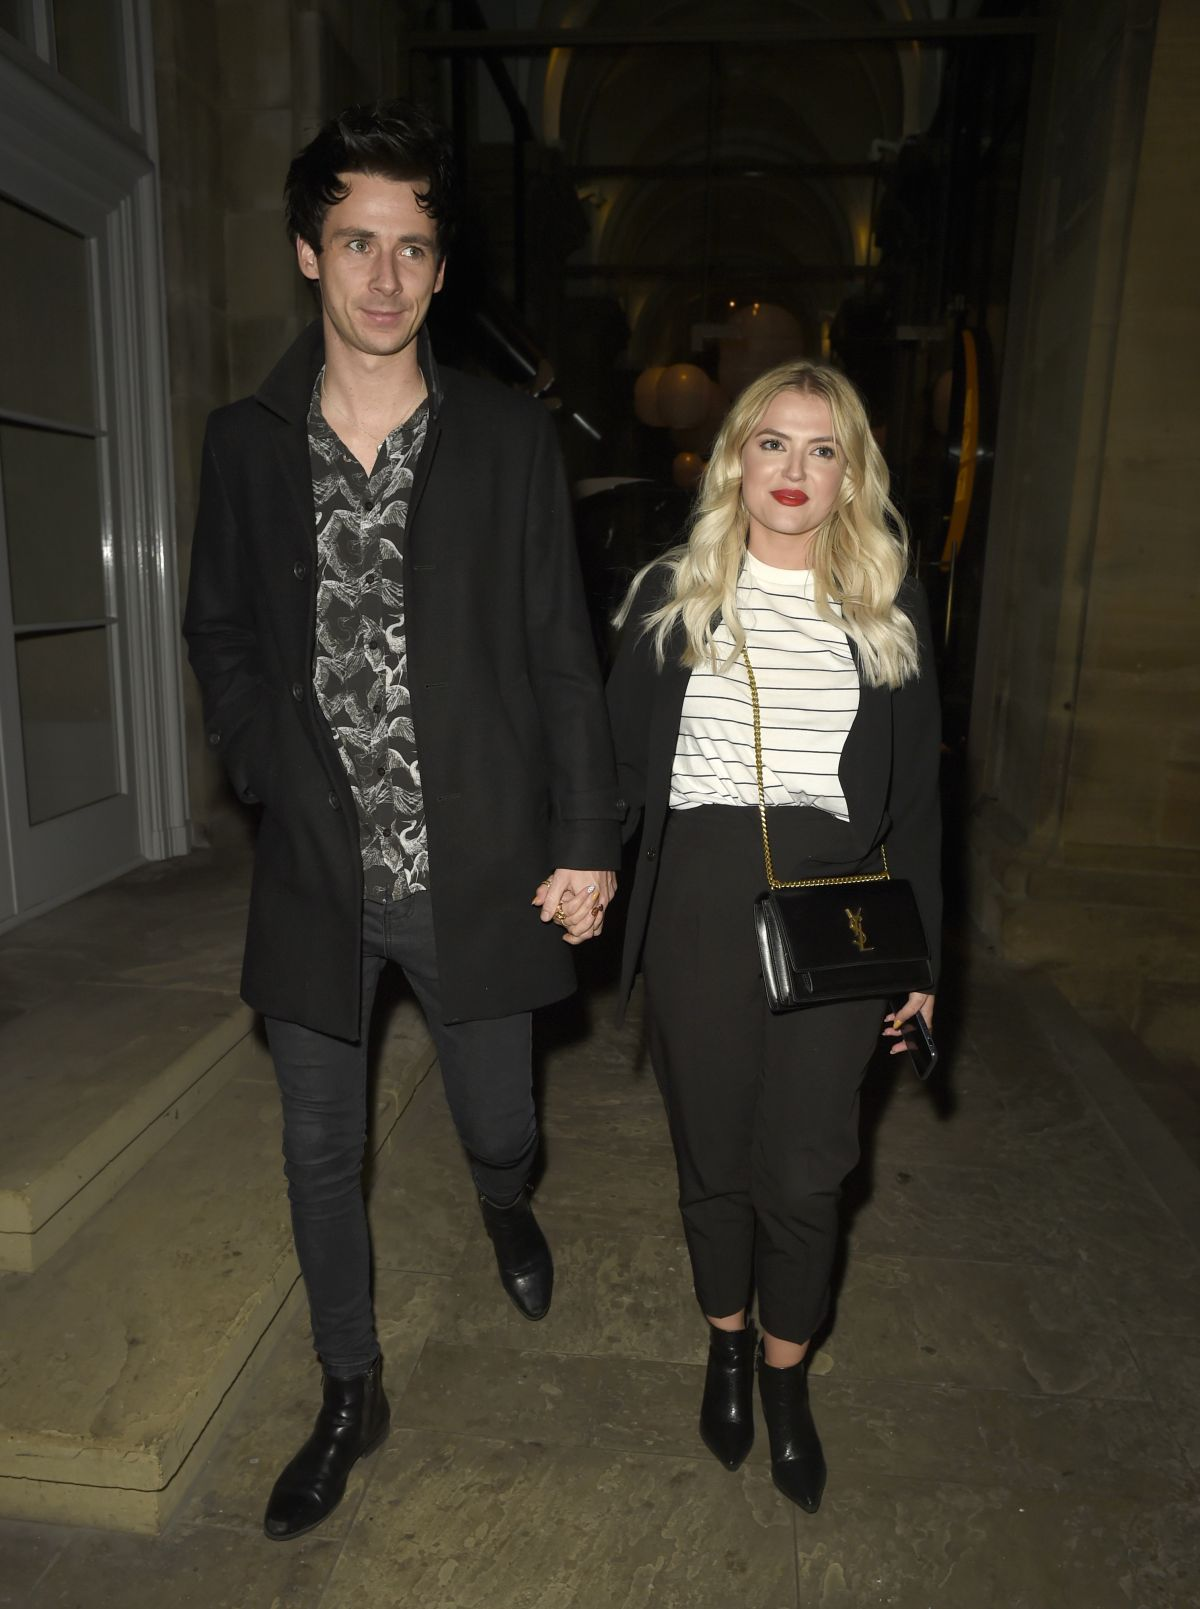 Lucy Fallon And Her Boyfriend Tom Leech Enjoy A Date Night At Peter Street Kitchen Restaurant In Manchester Celebzz Celebzz